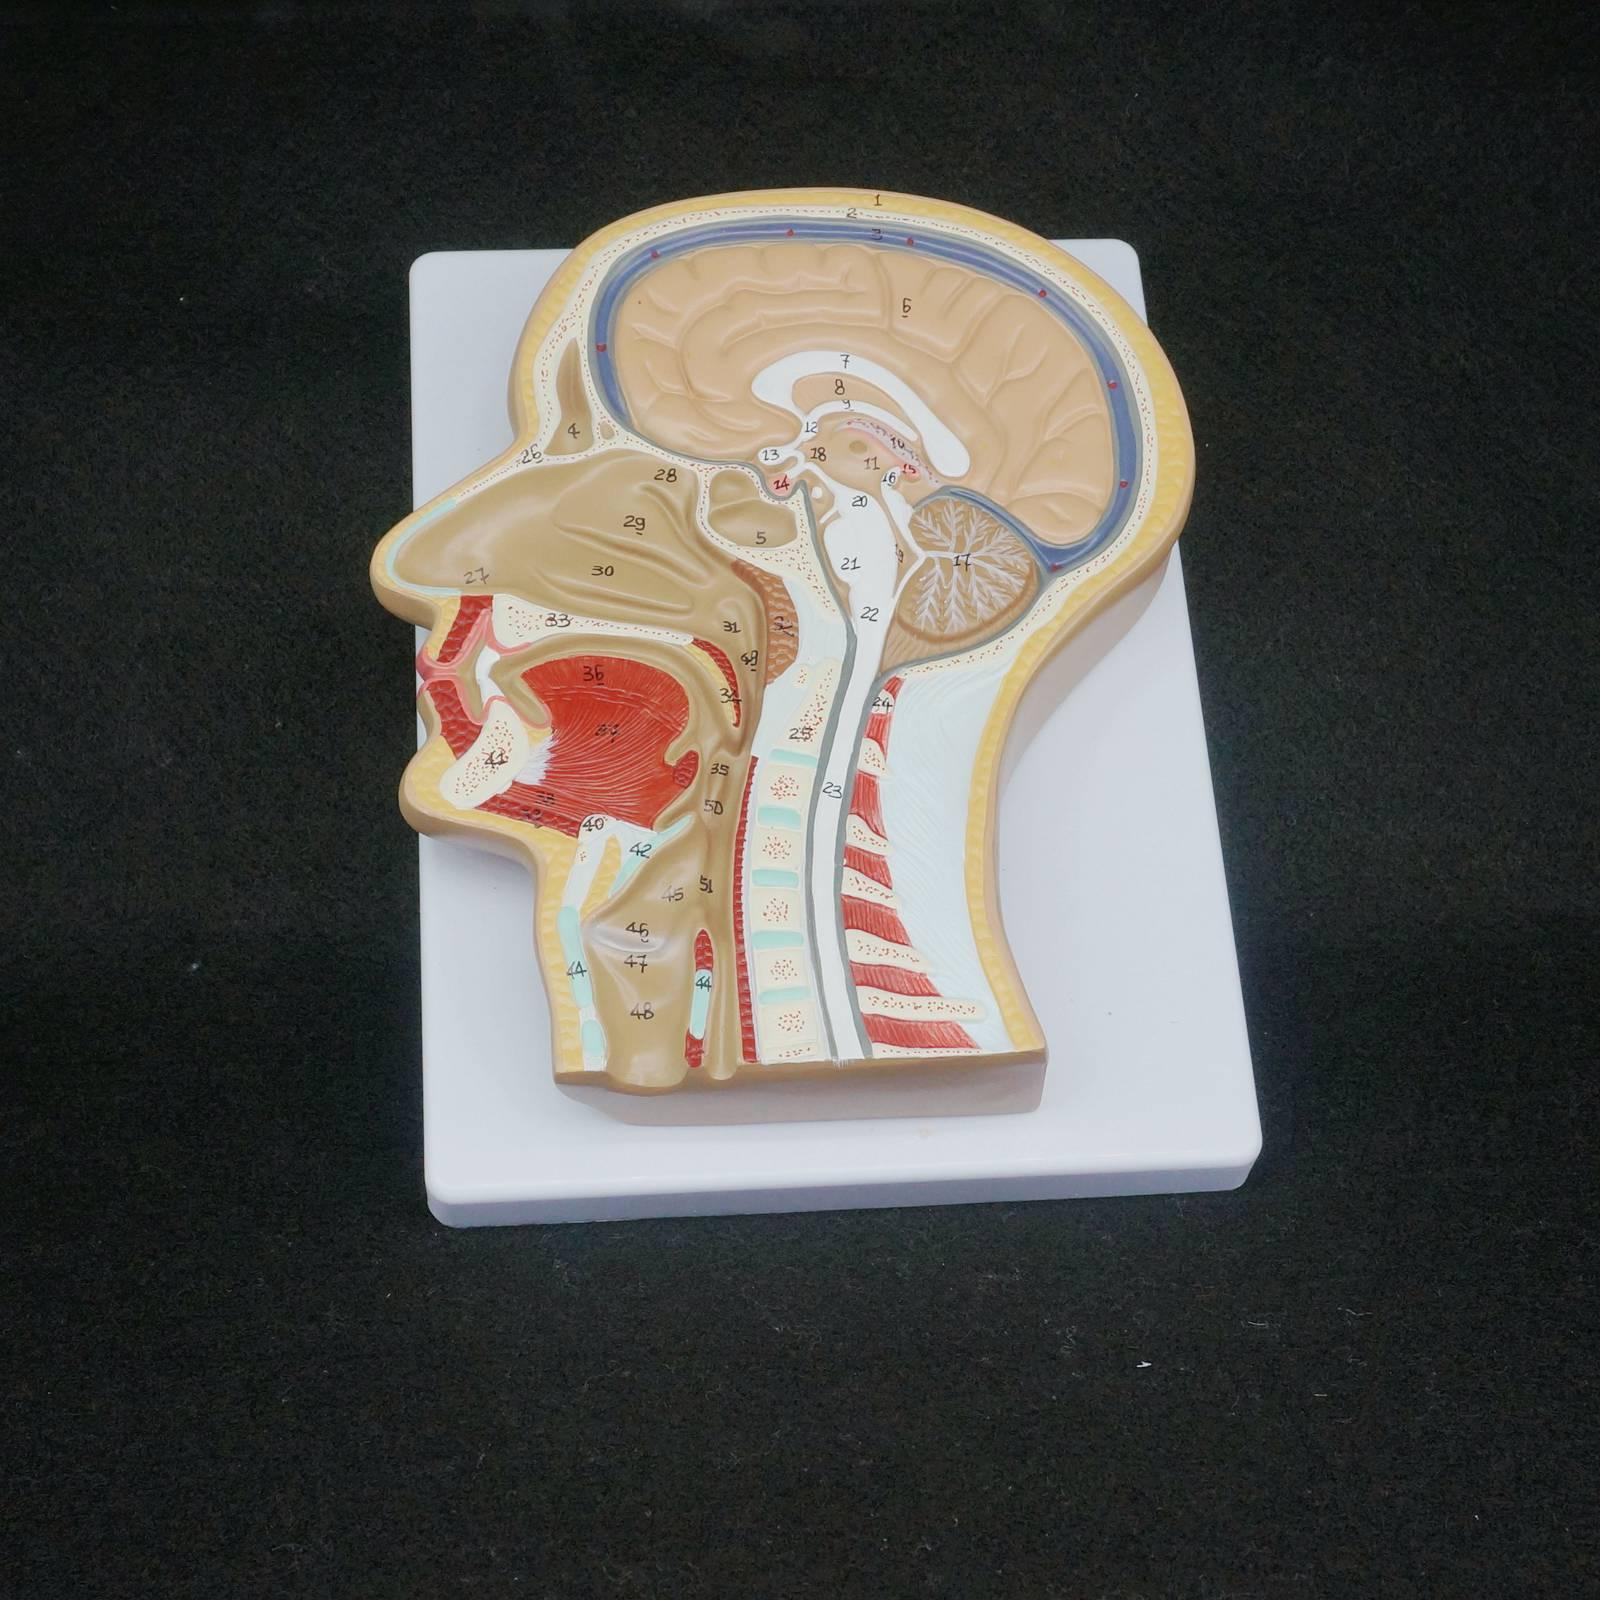 Human Median Section of Head Anatomical Model Medical Skeleton Anatomy Digital Identification median section of head model anatomical head model